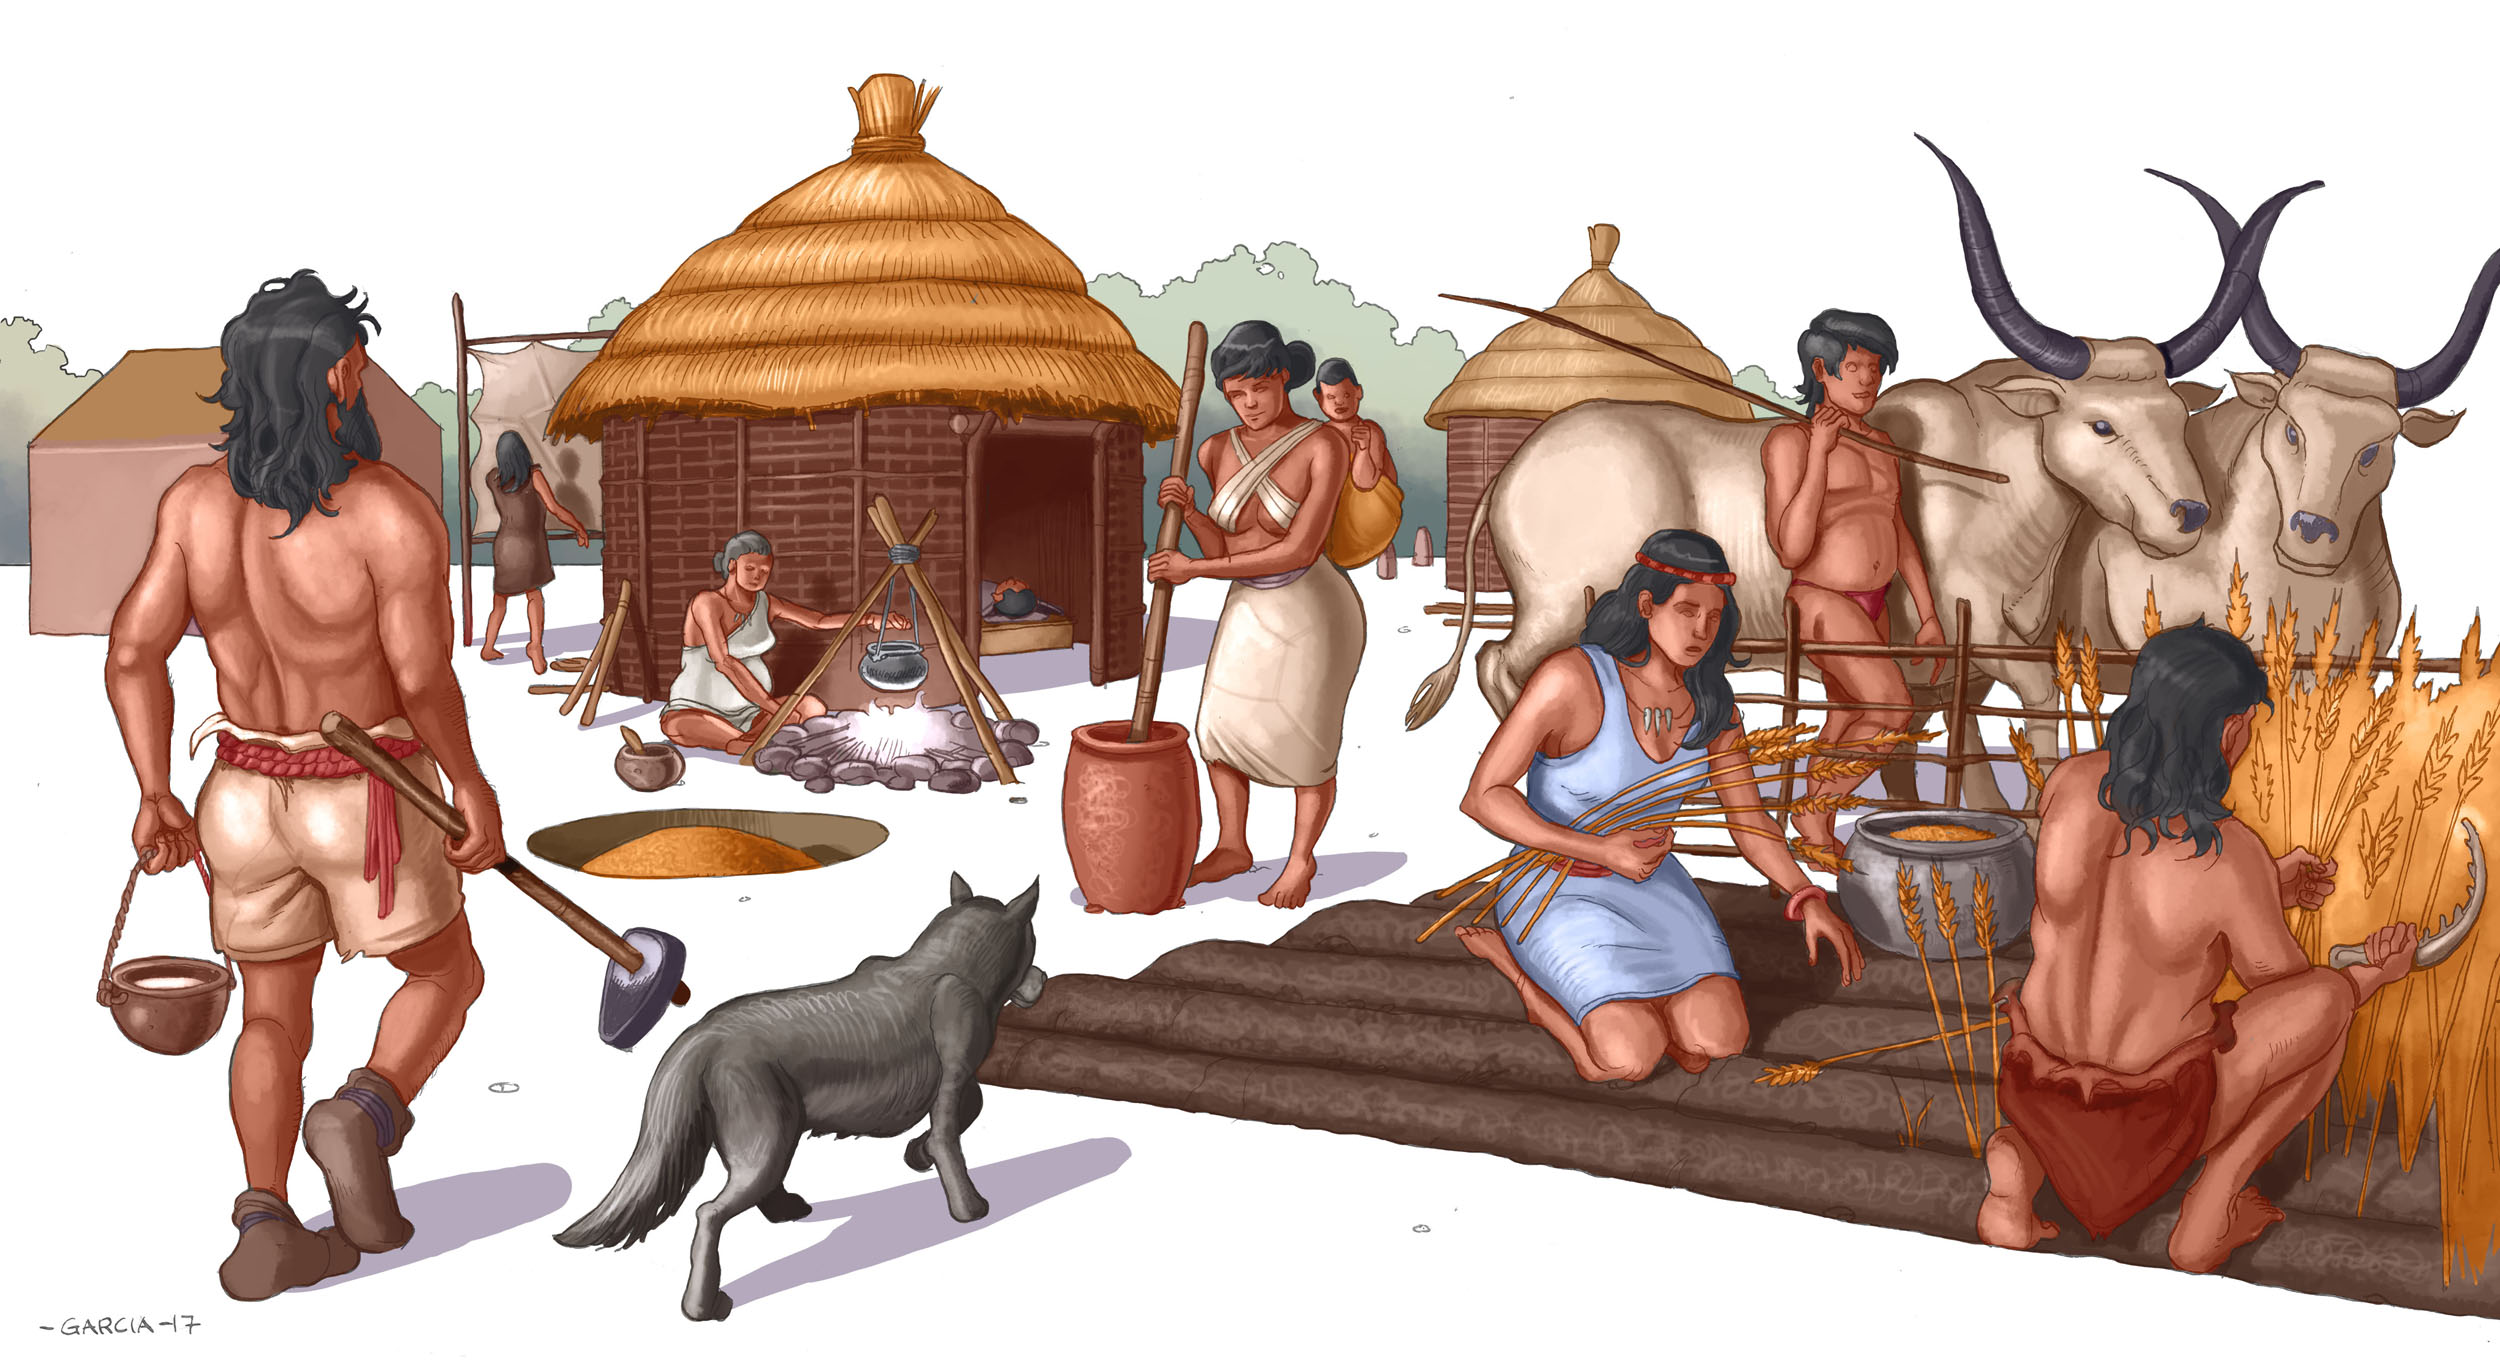 Daniel Garcia Art Illustration Asa Leya Neolithic History School Book Children Teenager Historia Livro Criancas Adolescentes 01